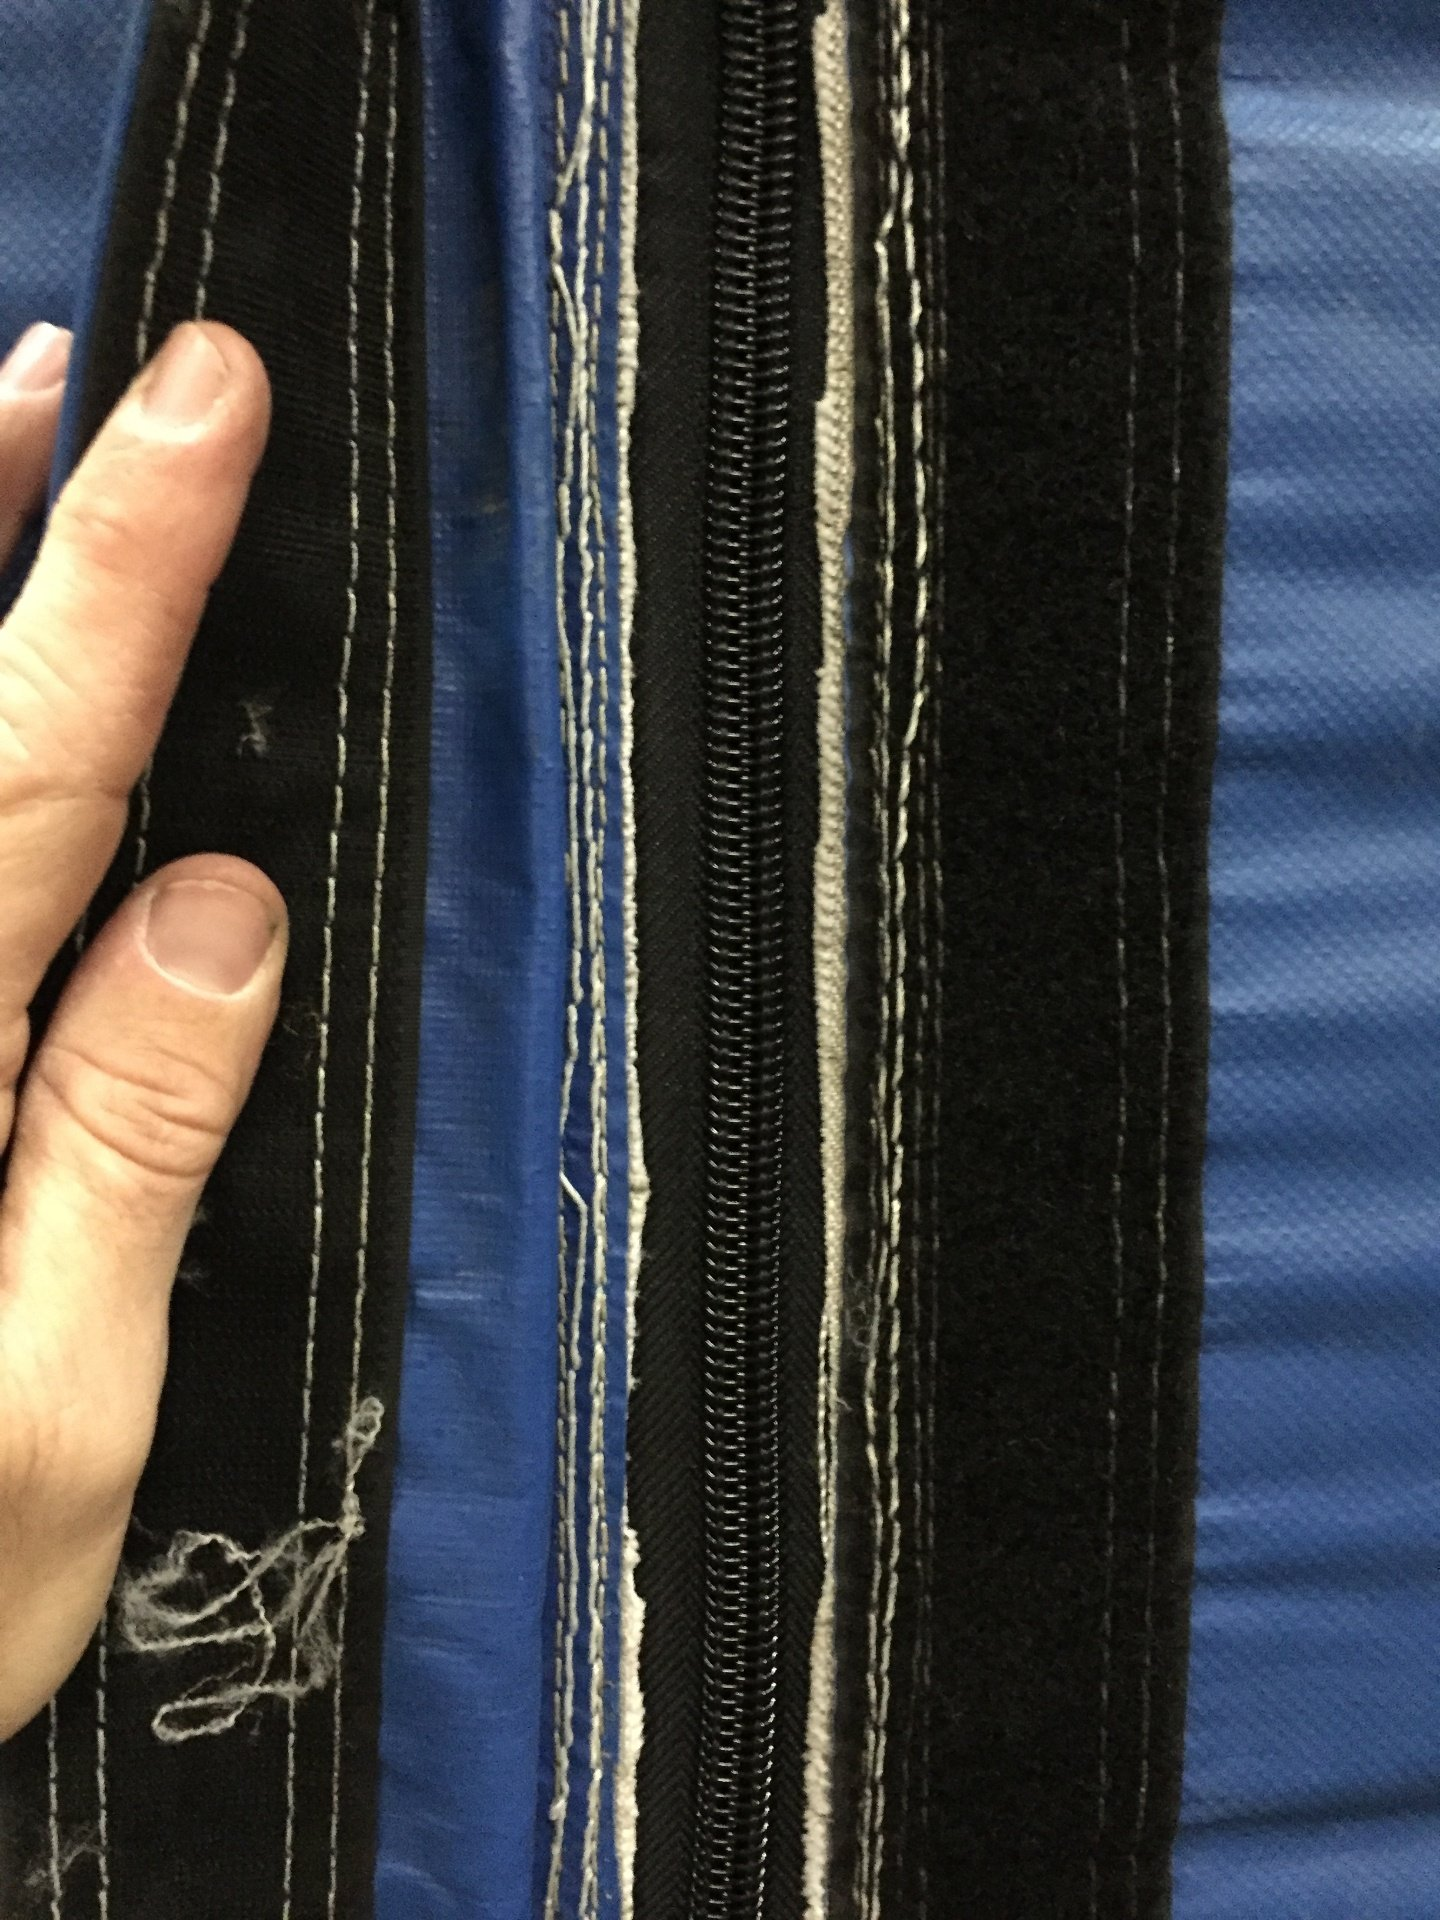 Zipper Replacement - After